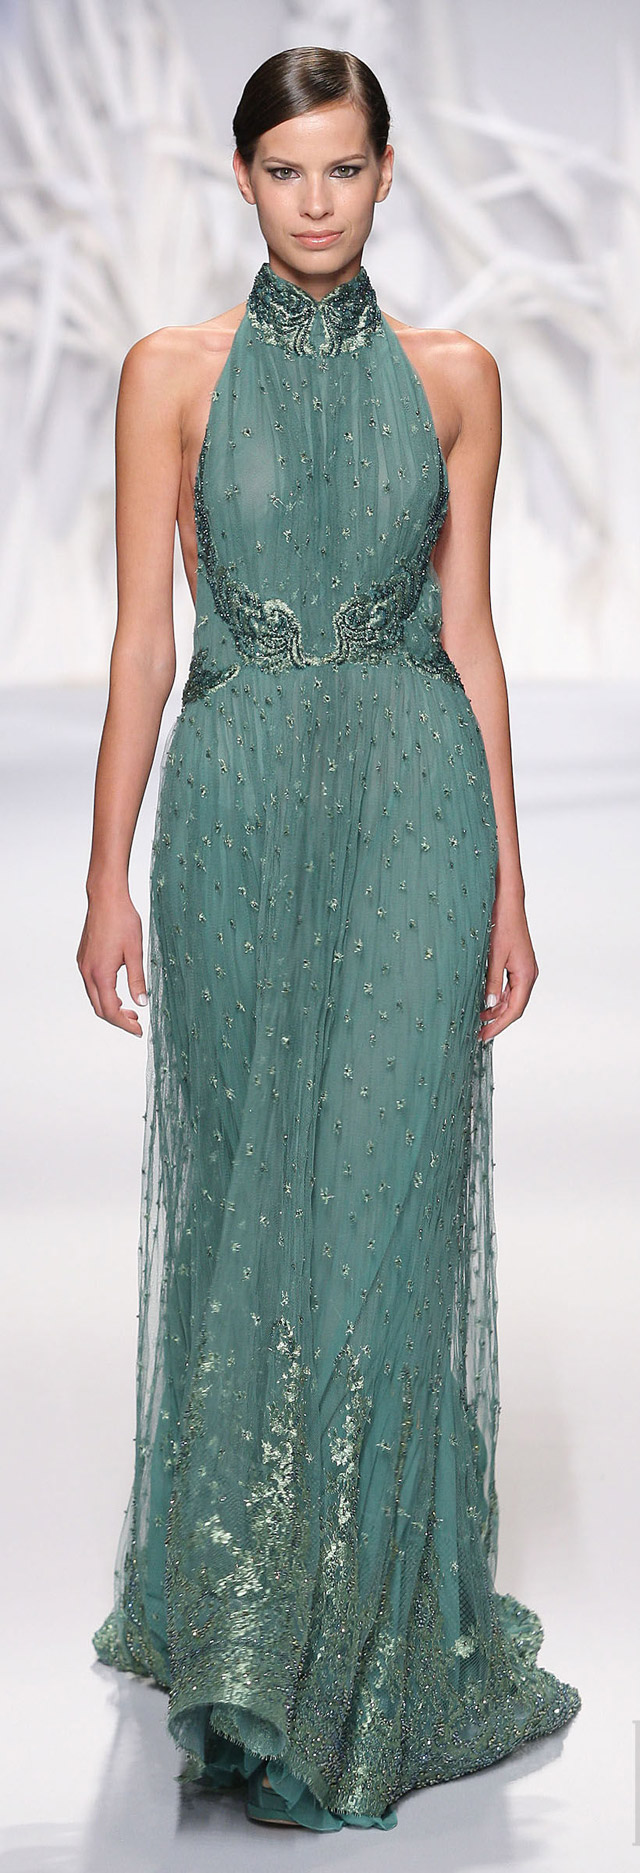 Abed Mahfouz Haute Couture Fall-Winter 2013-2014 (7)